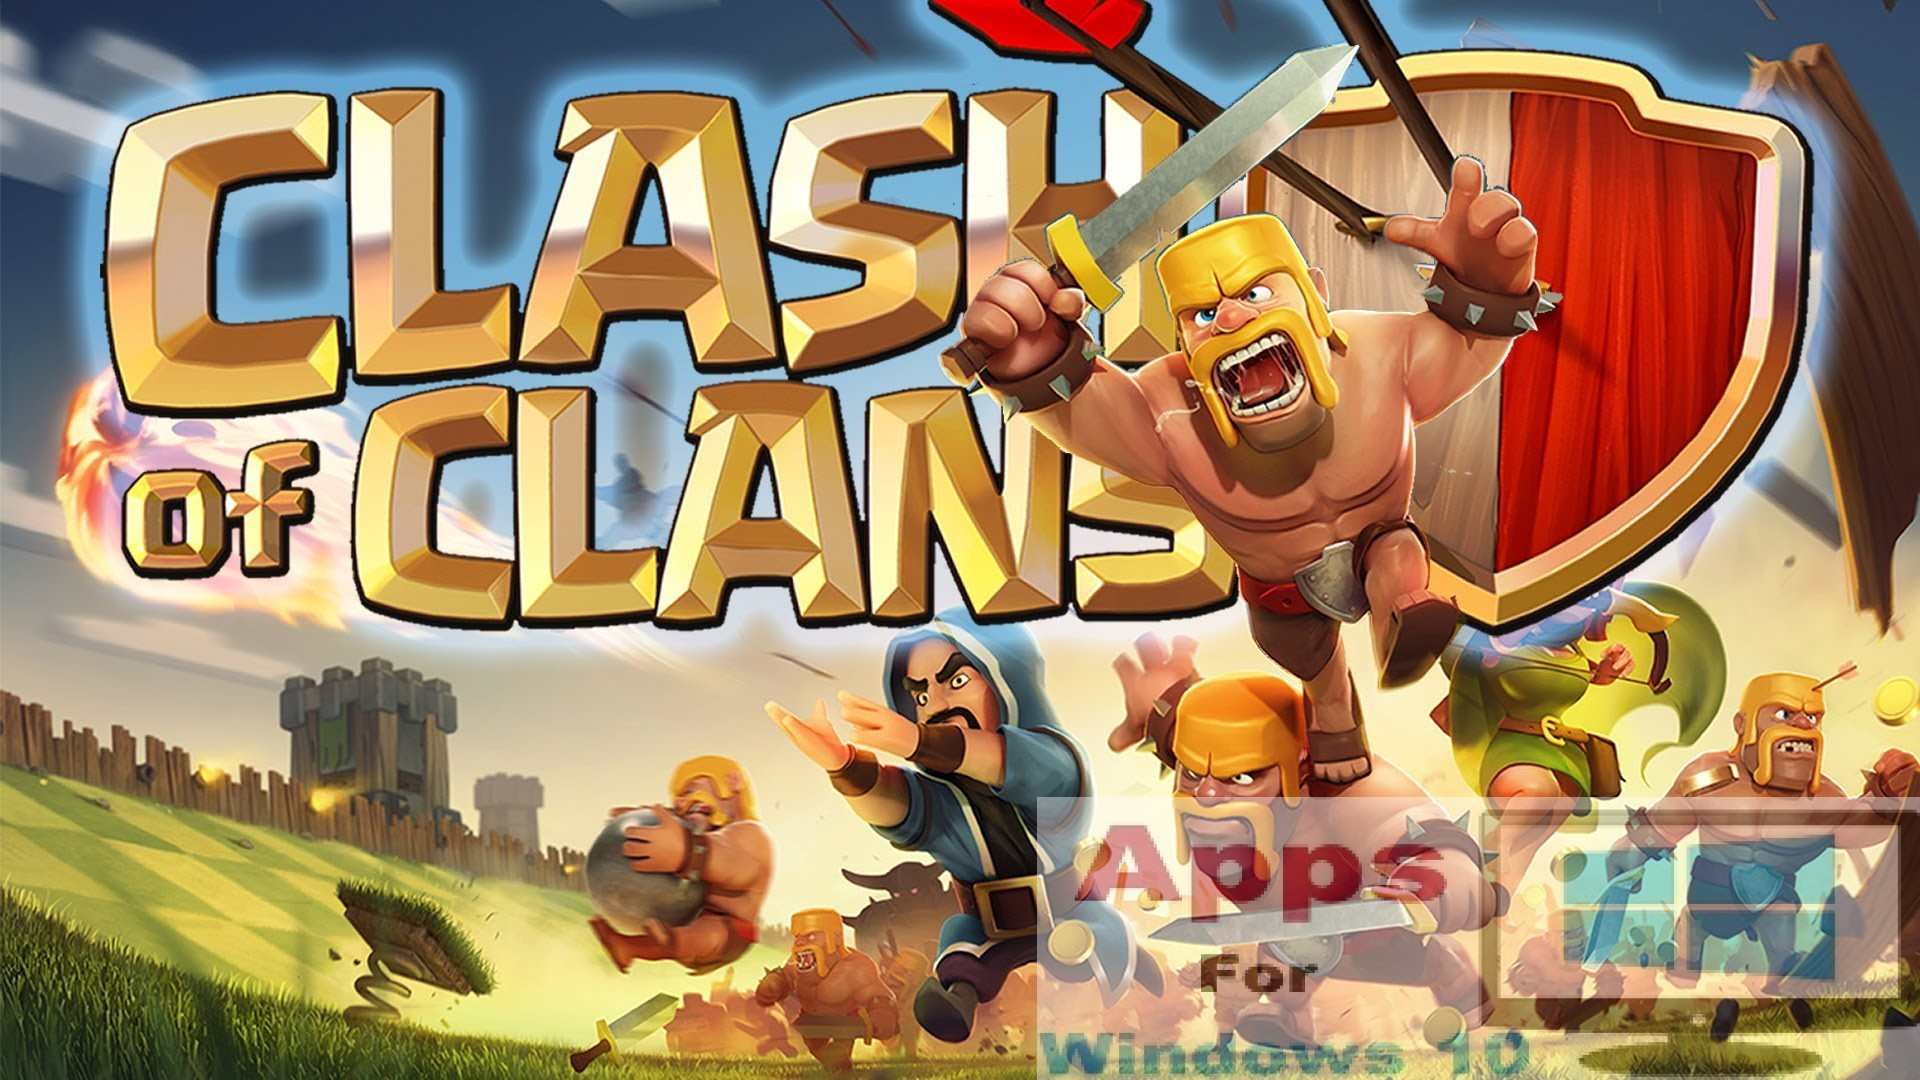 Clash_of_Clans_for_Windows10